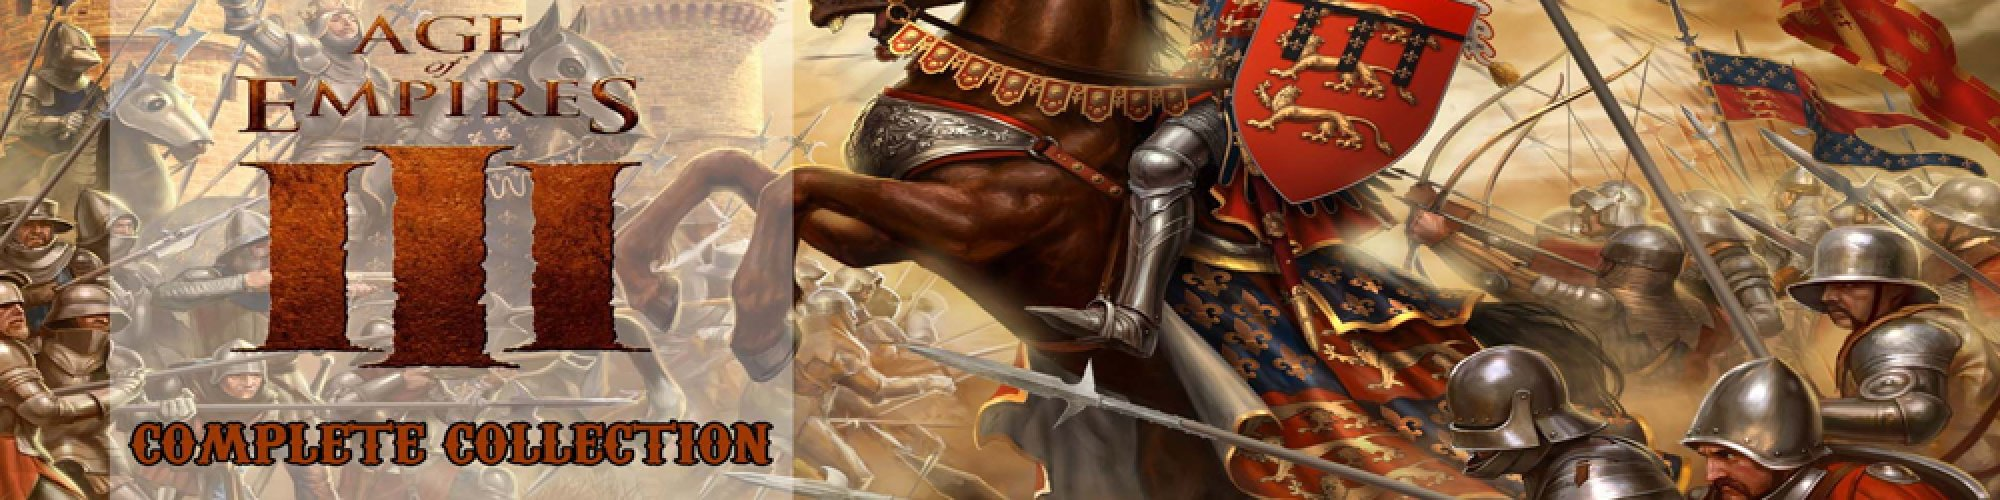 Age of Empires III Complete Collection banner